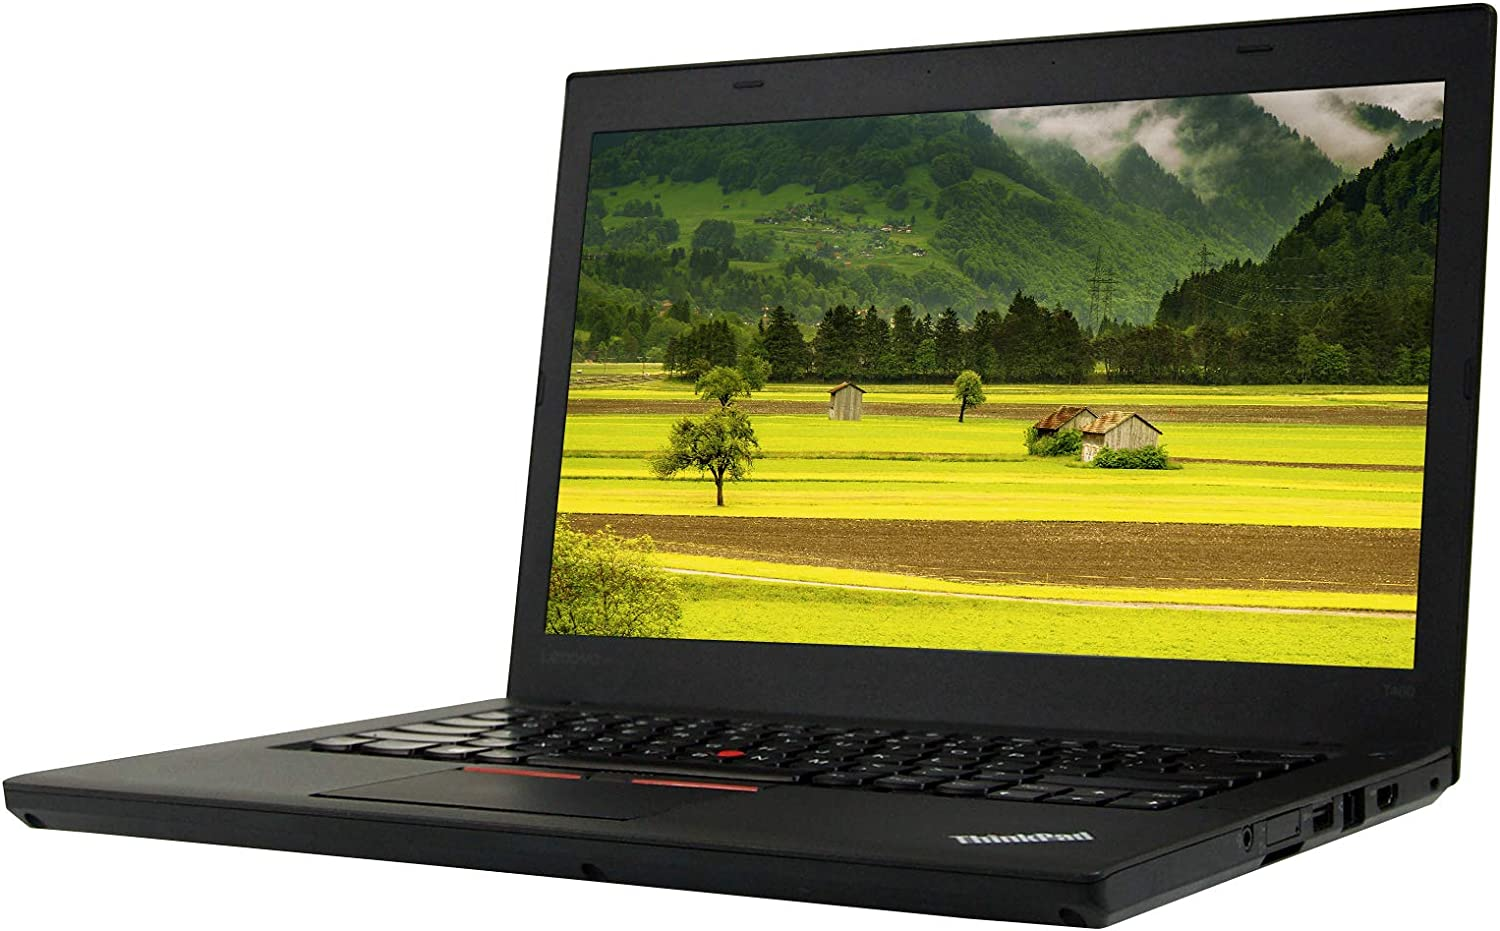 Lenovo ThinkPad T460 14 inches HD, Core i5-6300U 2.4GHz, 16GB RAM, 512GB Solid State Drive, Windows 10 Pro 64Bit, (Renewed)